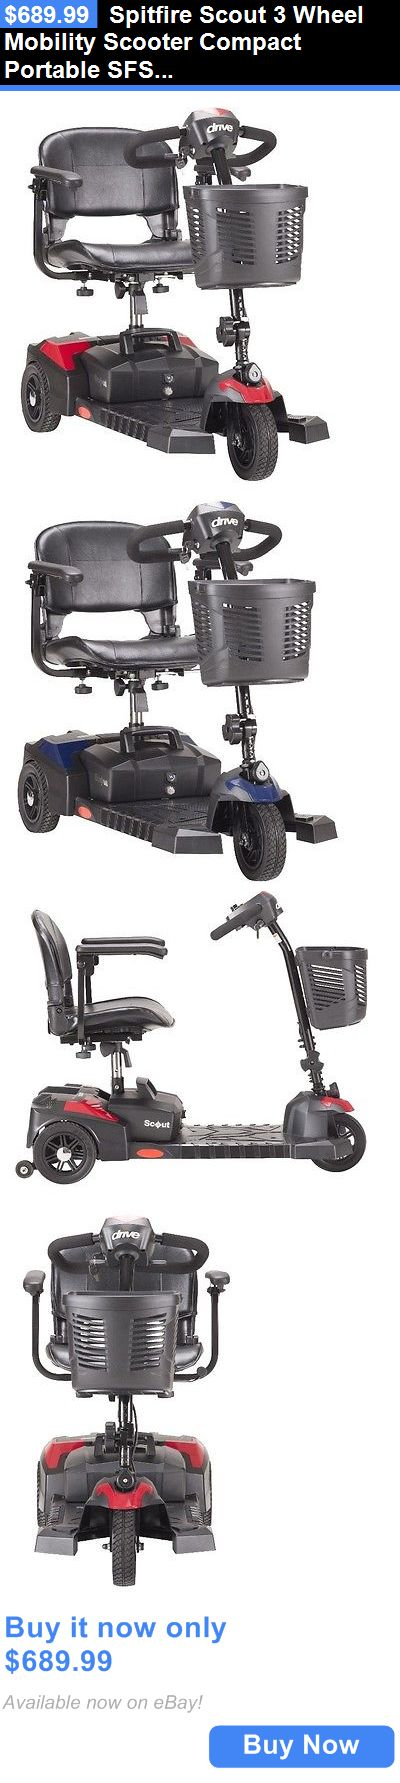 Mobility Scooters: Spitfire Scout 3 Wheel Mobility Scooter Compact Portable Sfscout3 Drive Medical BUY IT NOW ONLY: $689.99